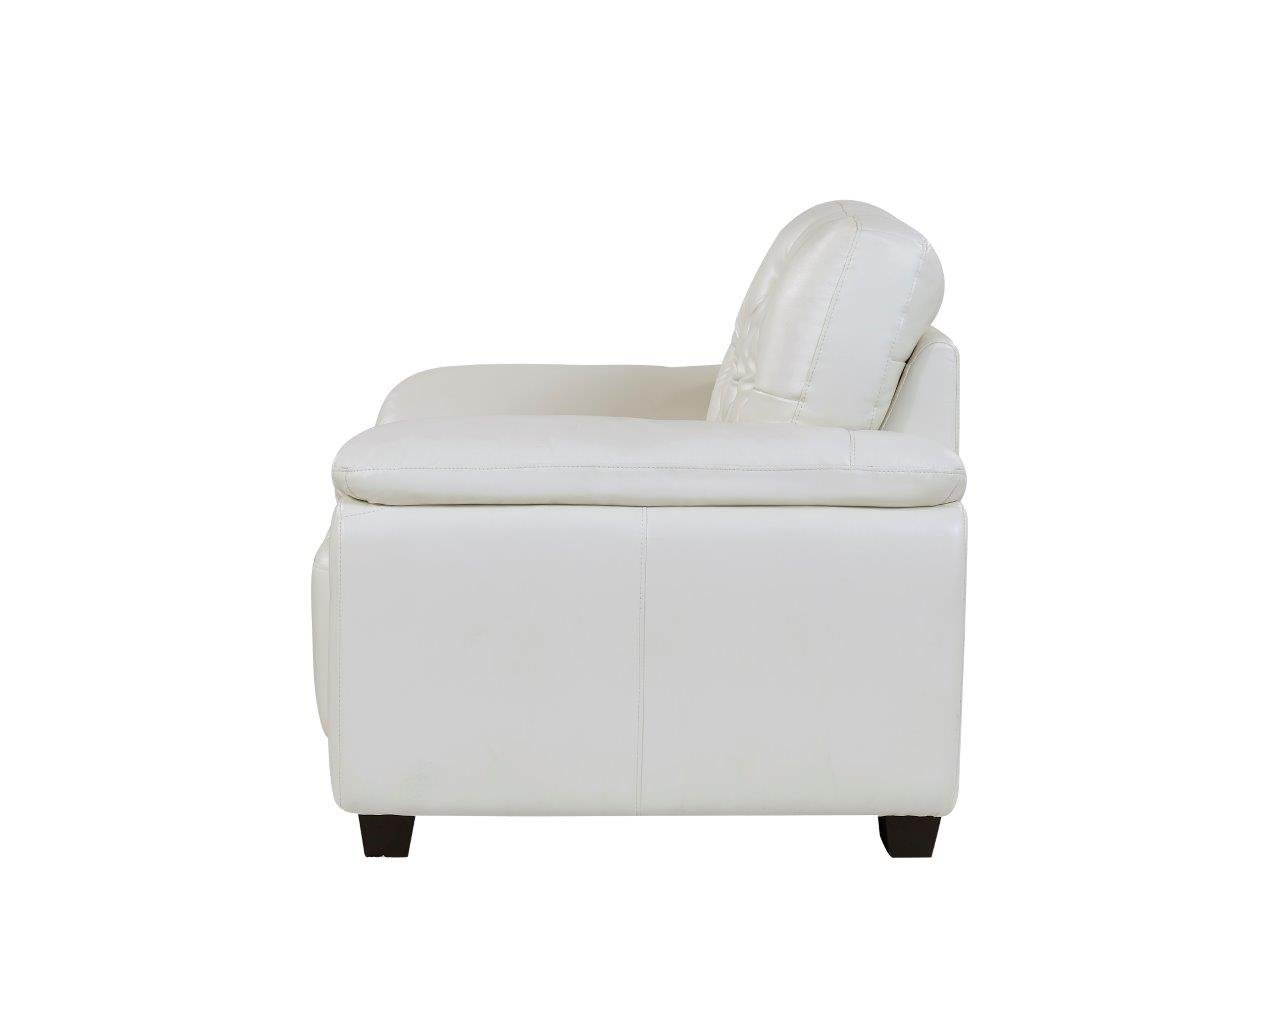 u1066 pluto white leather chair by global furniture